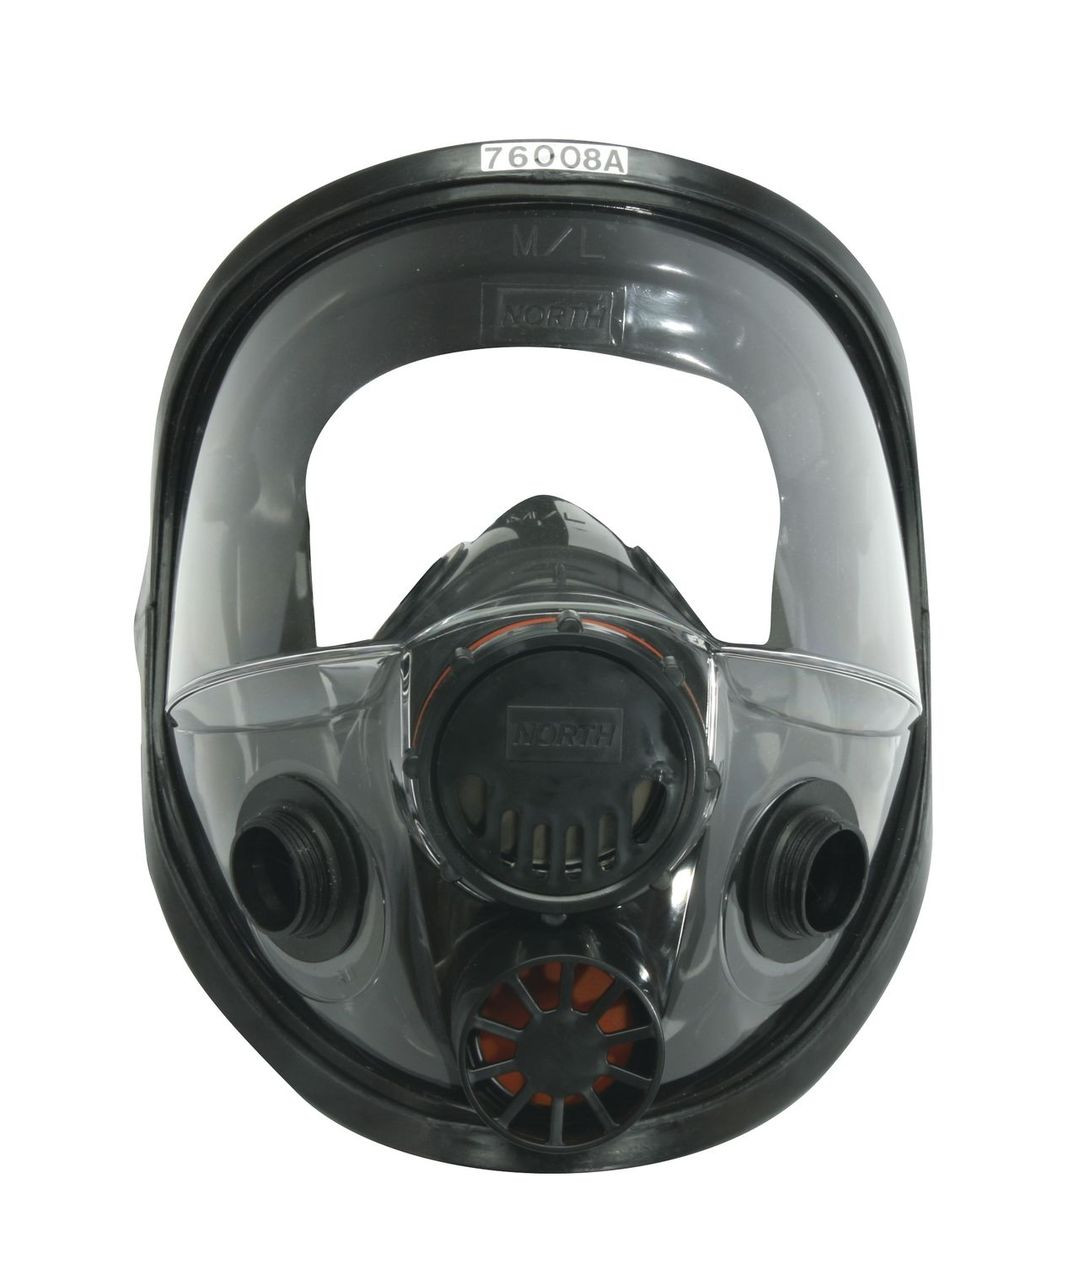 North Safety 760008a Silicone Full Facepiece Respirator